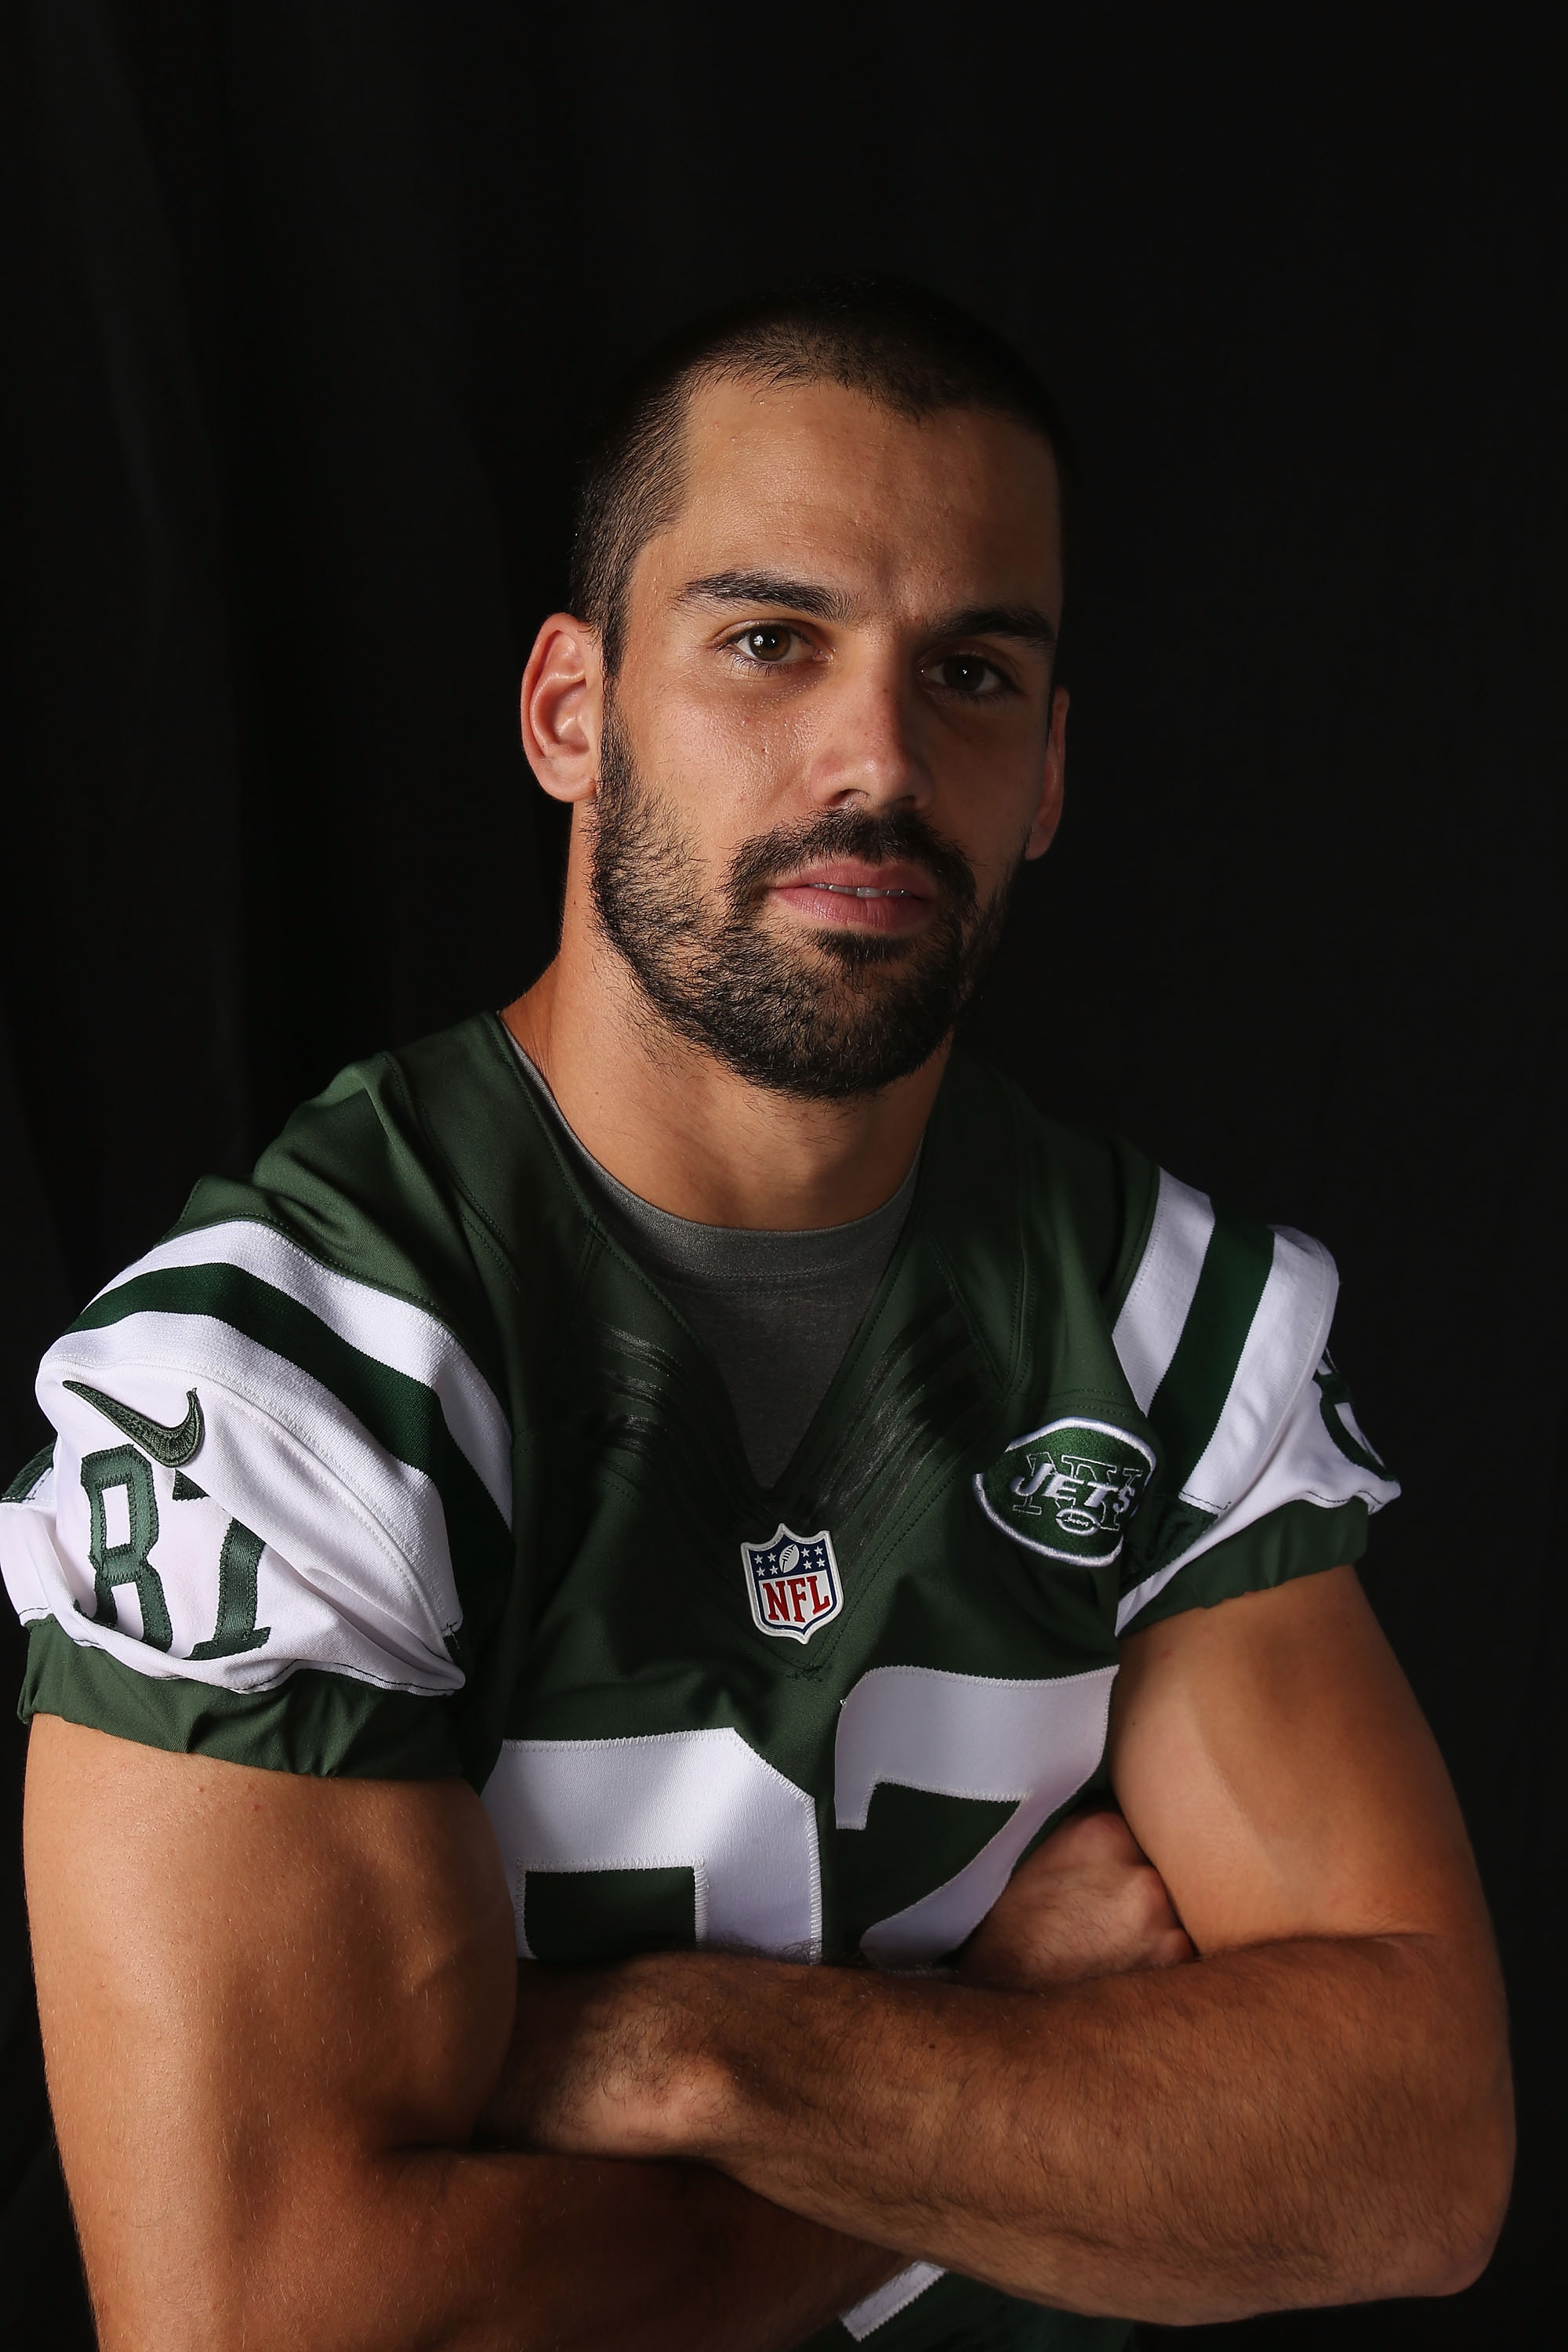 Outsports 2015 All Hot Nfl Team Outsports